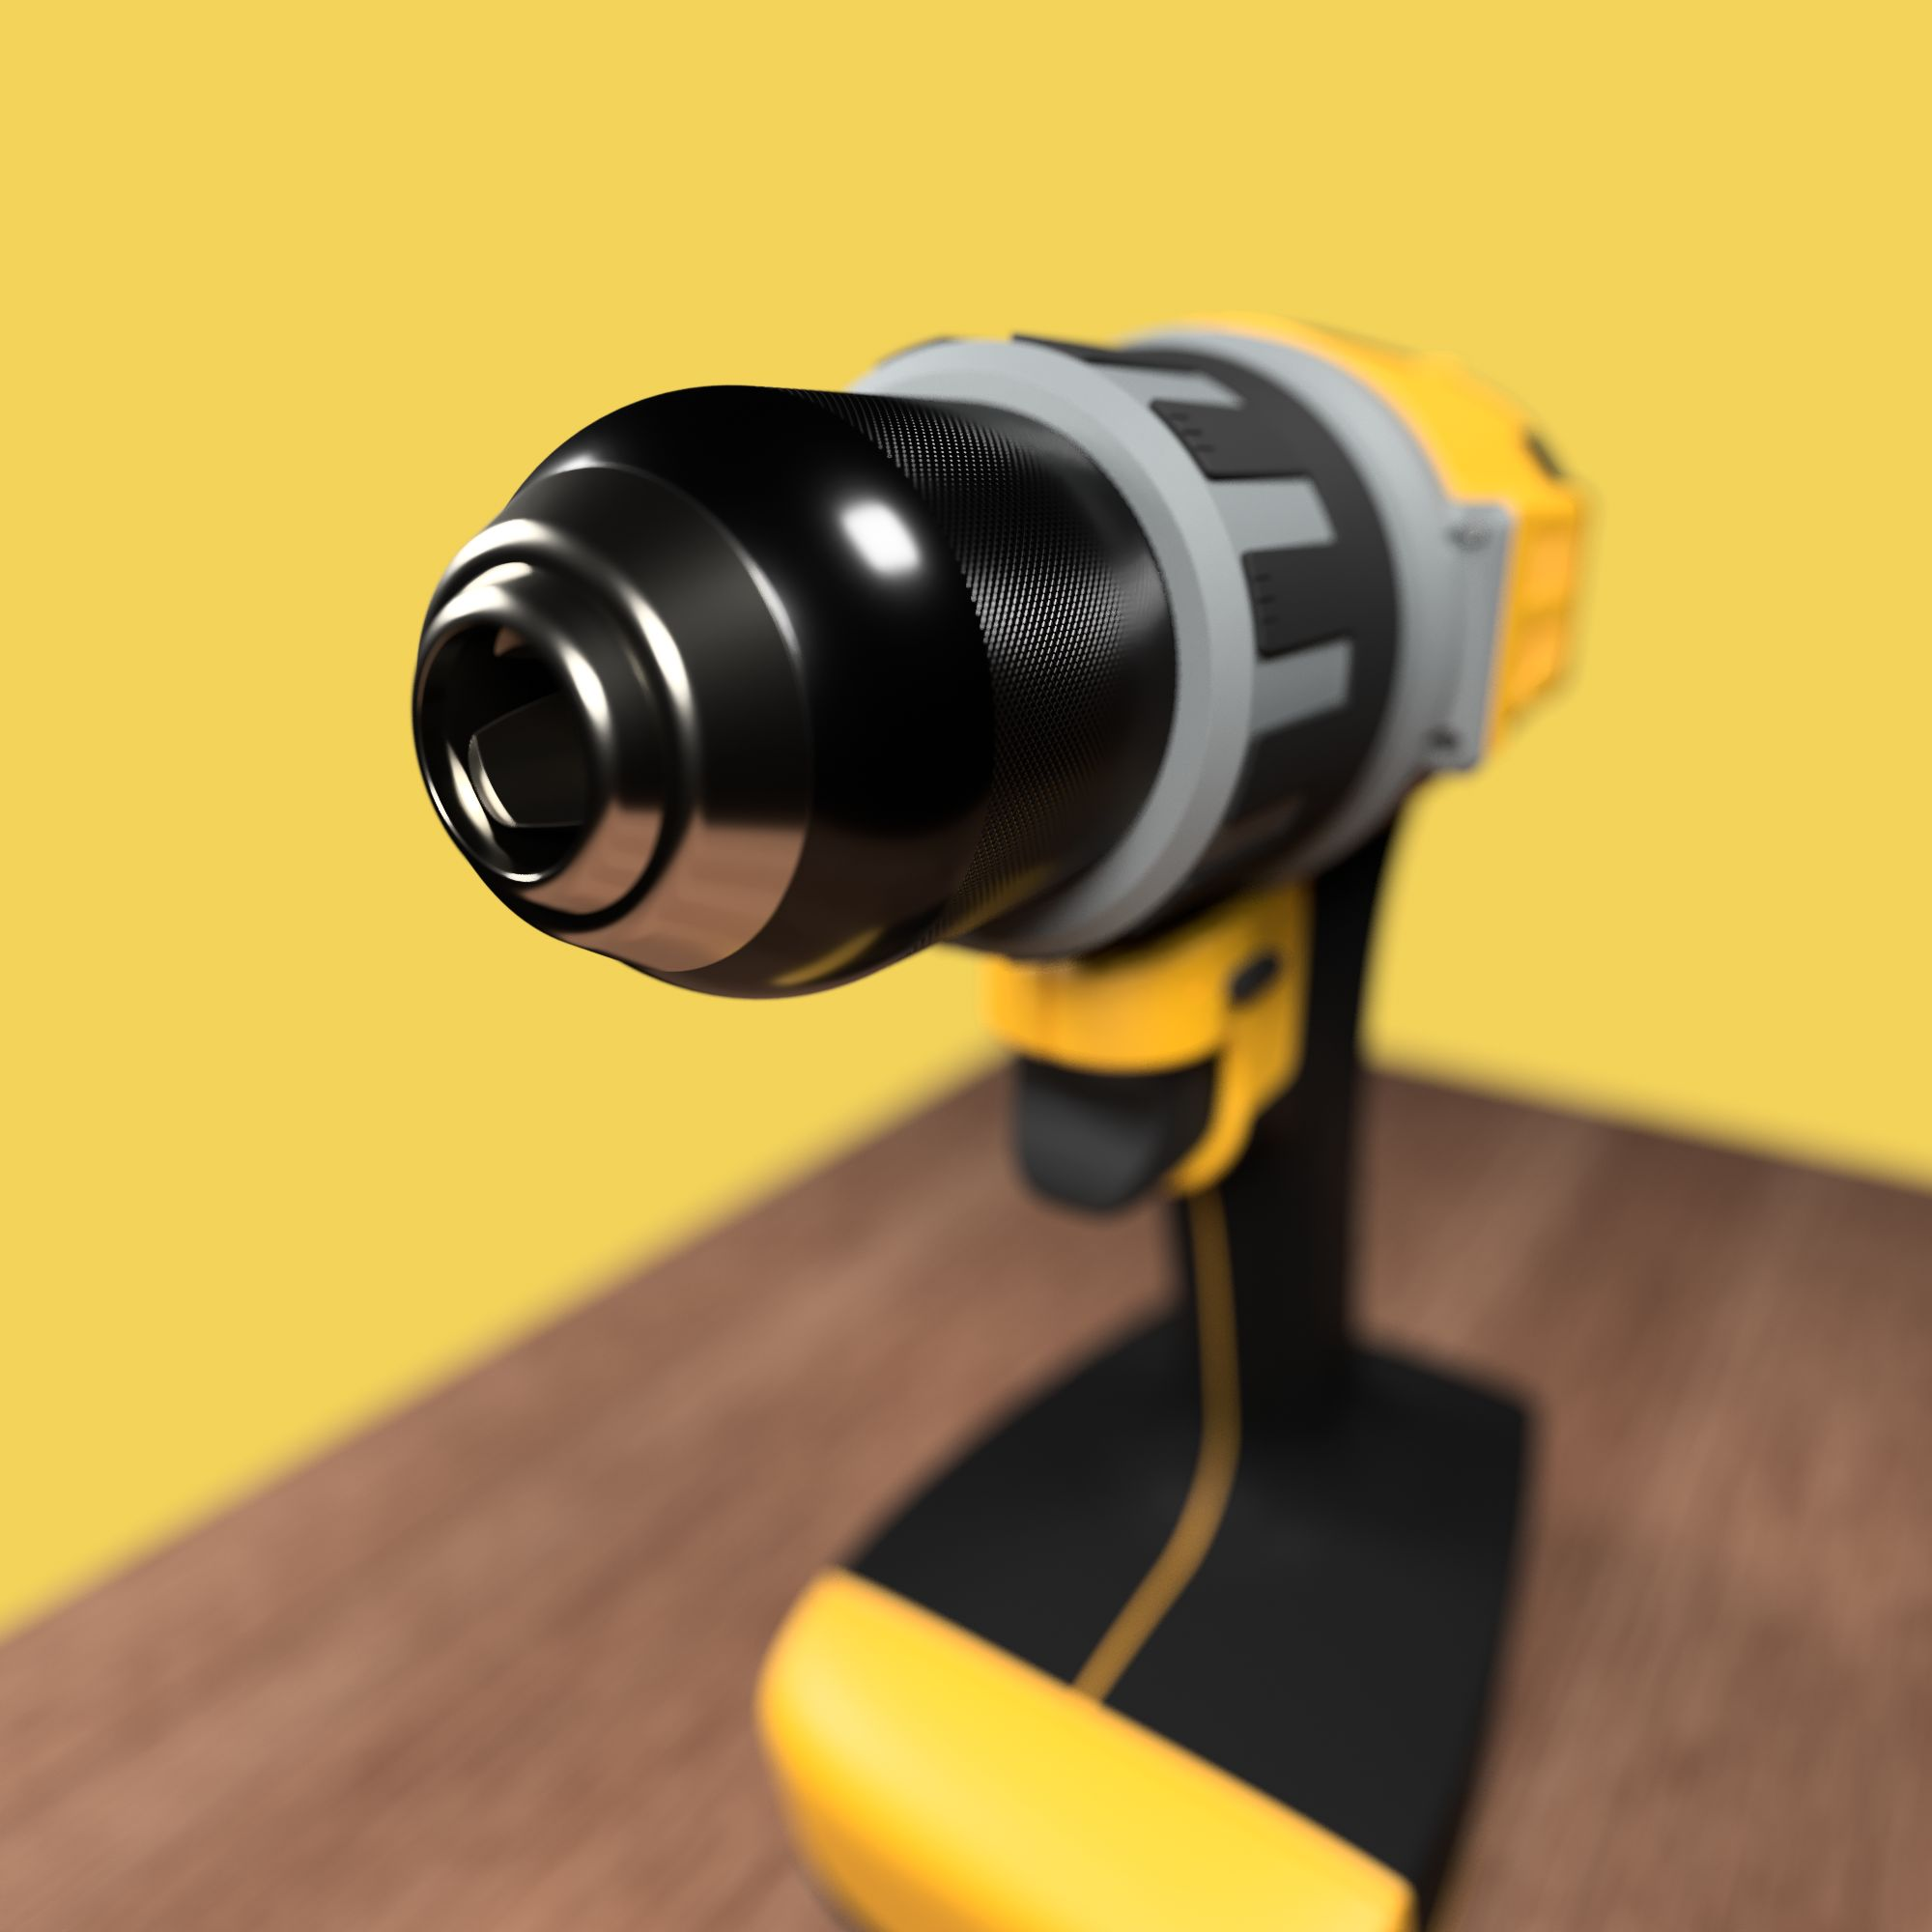 Dc-power-drill-v2-2017-jan-15-05-37-27pm-000-customizedview33305838470-3500-3500